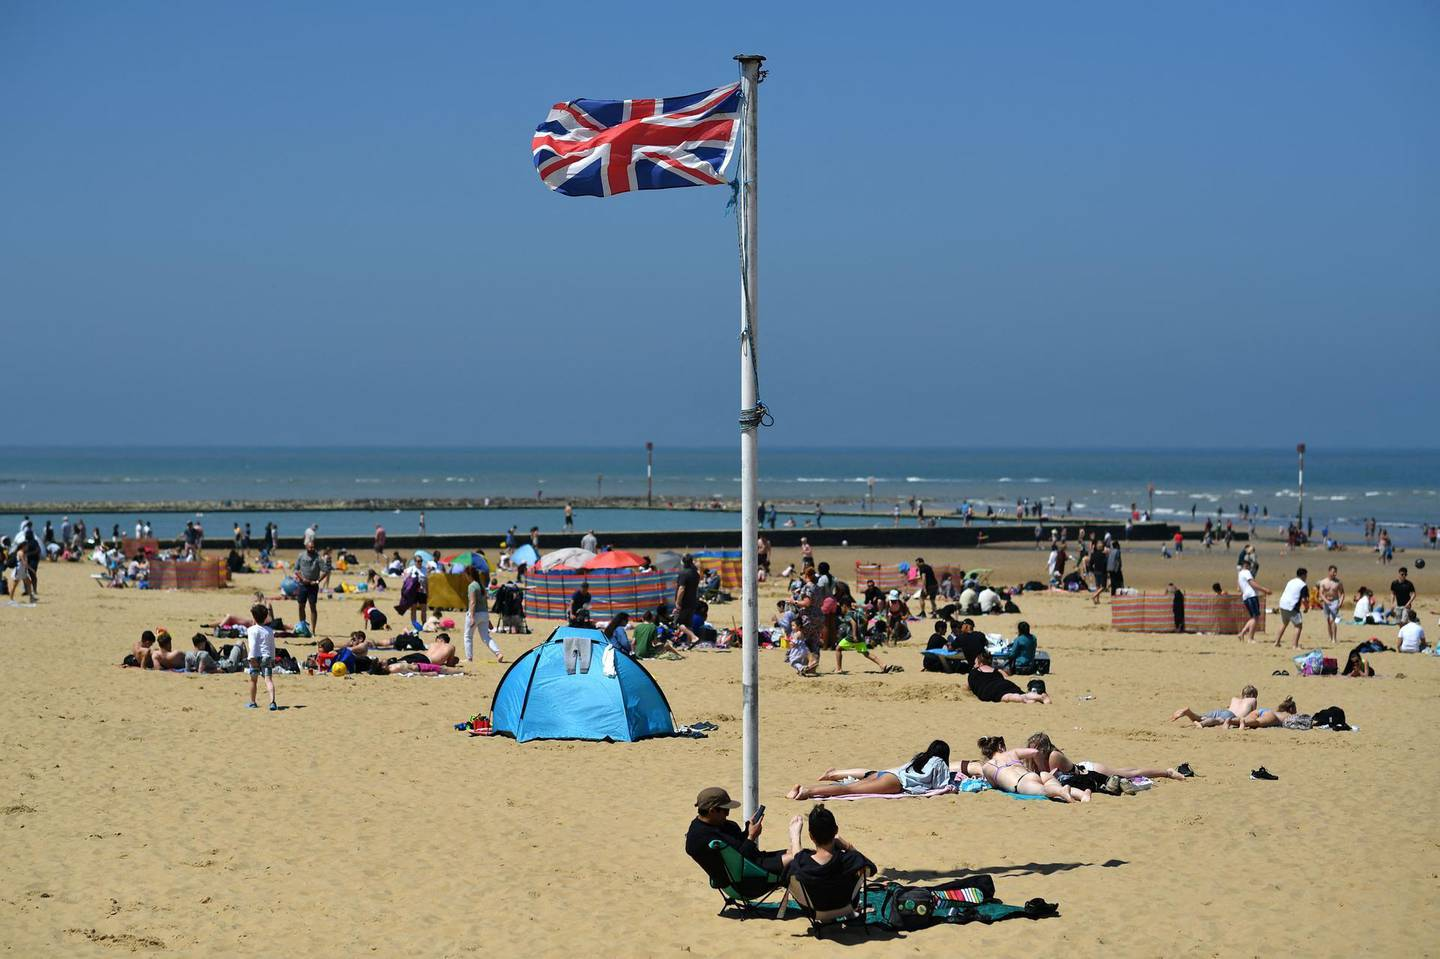 A Union flag flutters in the breeze as sunbathers take advantage of the fine weather on the beach on the coast at Margate, east of London on May 31, 2021, as fine and dry conditions continue in the UK on what could be the hottest day of the year so far.  / AFP / Ben STANSALL